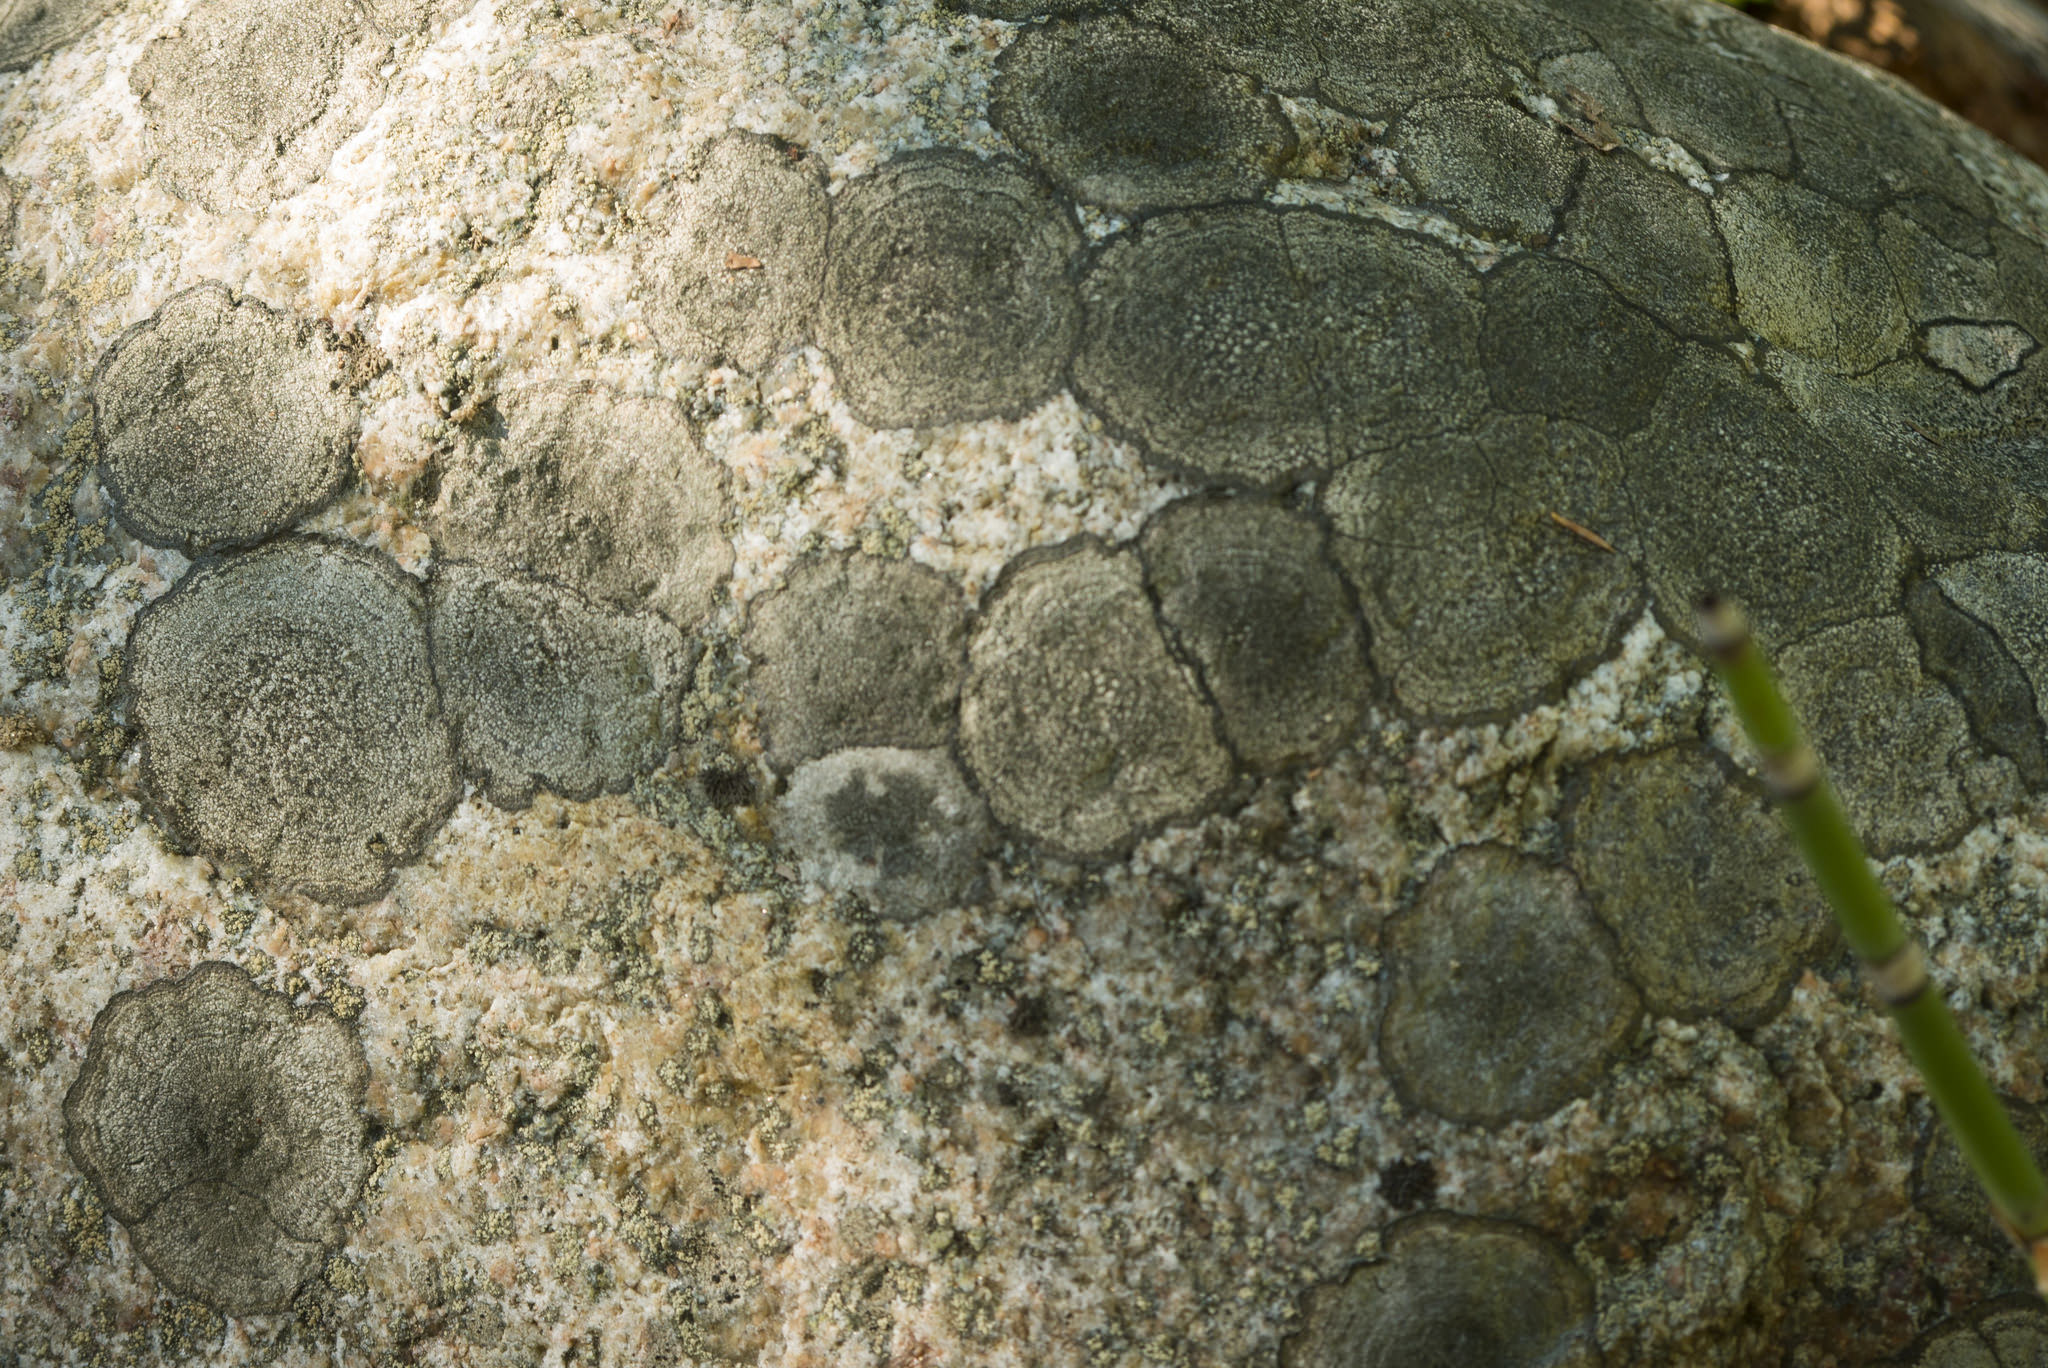 Peculiar lichen patterns on a rock